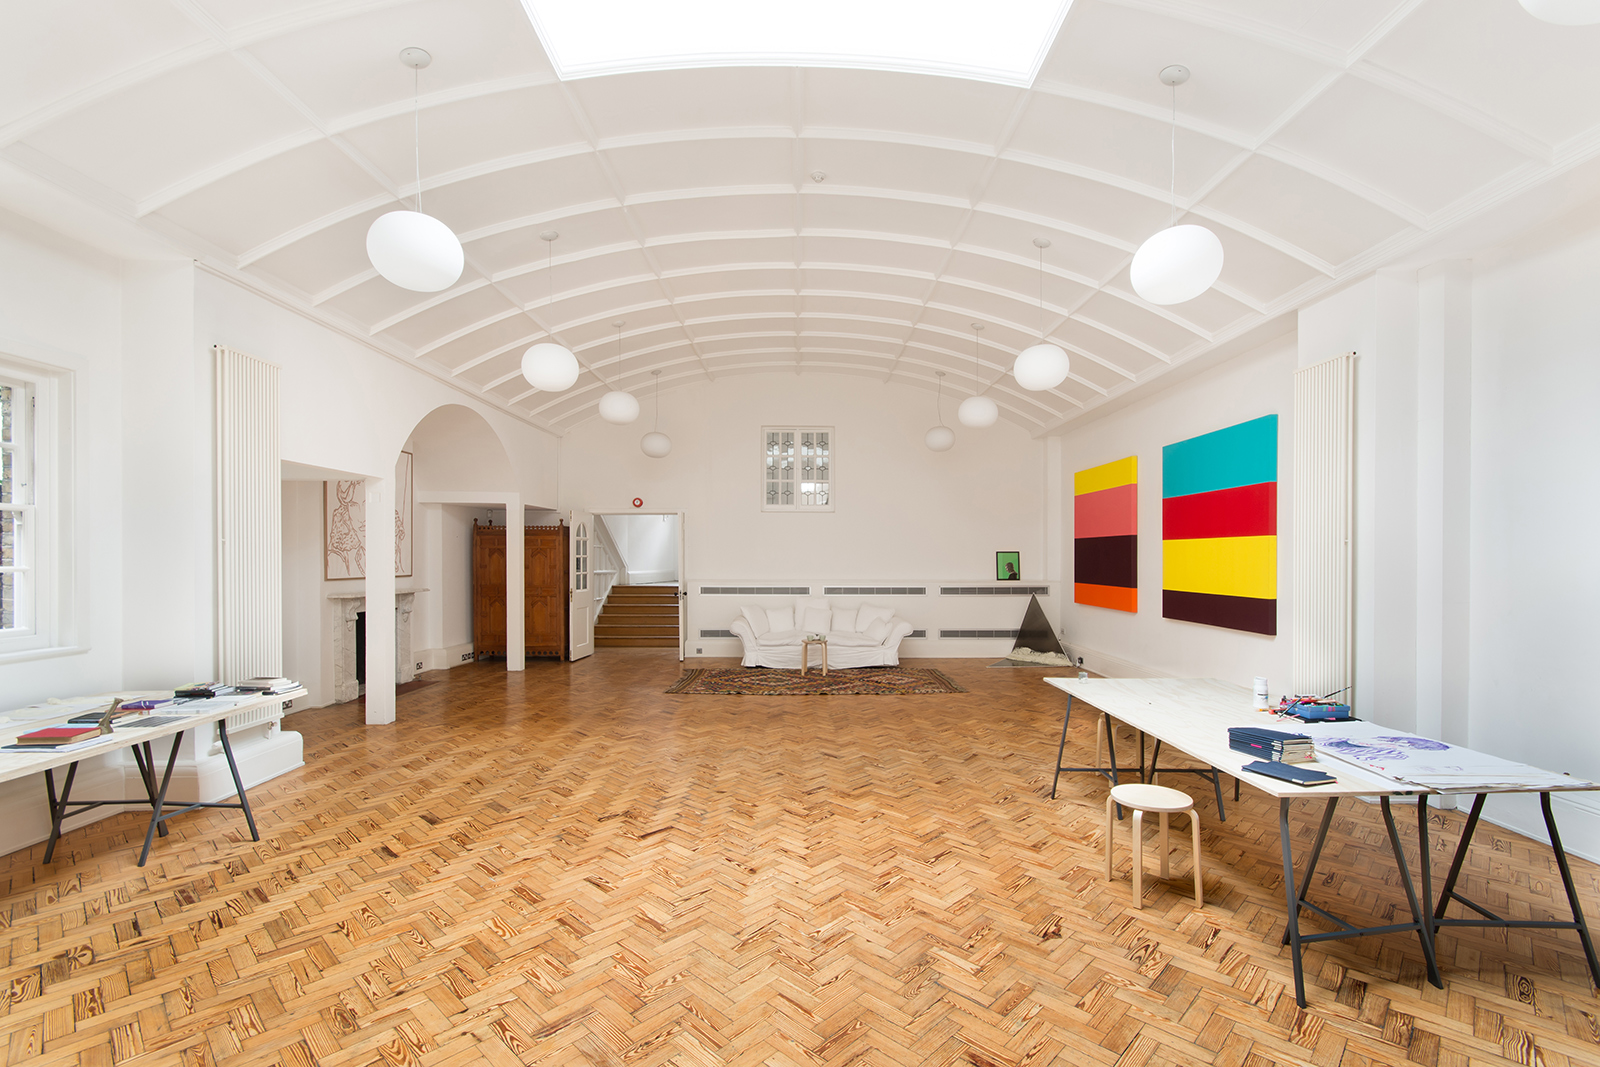 Arts & Crafts live/work space - the most unusual London homes for sale right now